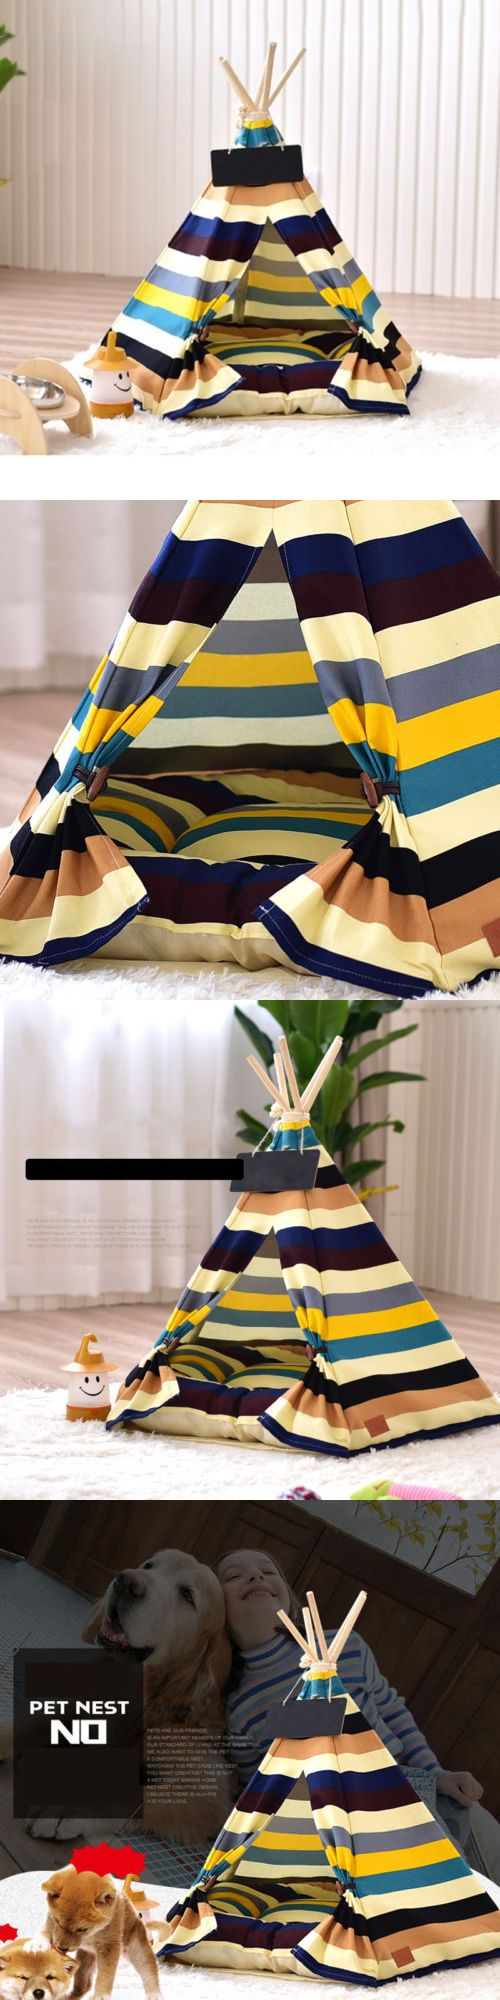 Dog Houses 108884: Removable Canvas Striped Pet Kennels Dog Cat Teepee Play Tent House Bed Chn L S -> BUY IT NOW ONLY: $31.55 on eBay!